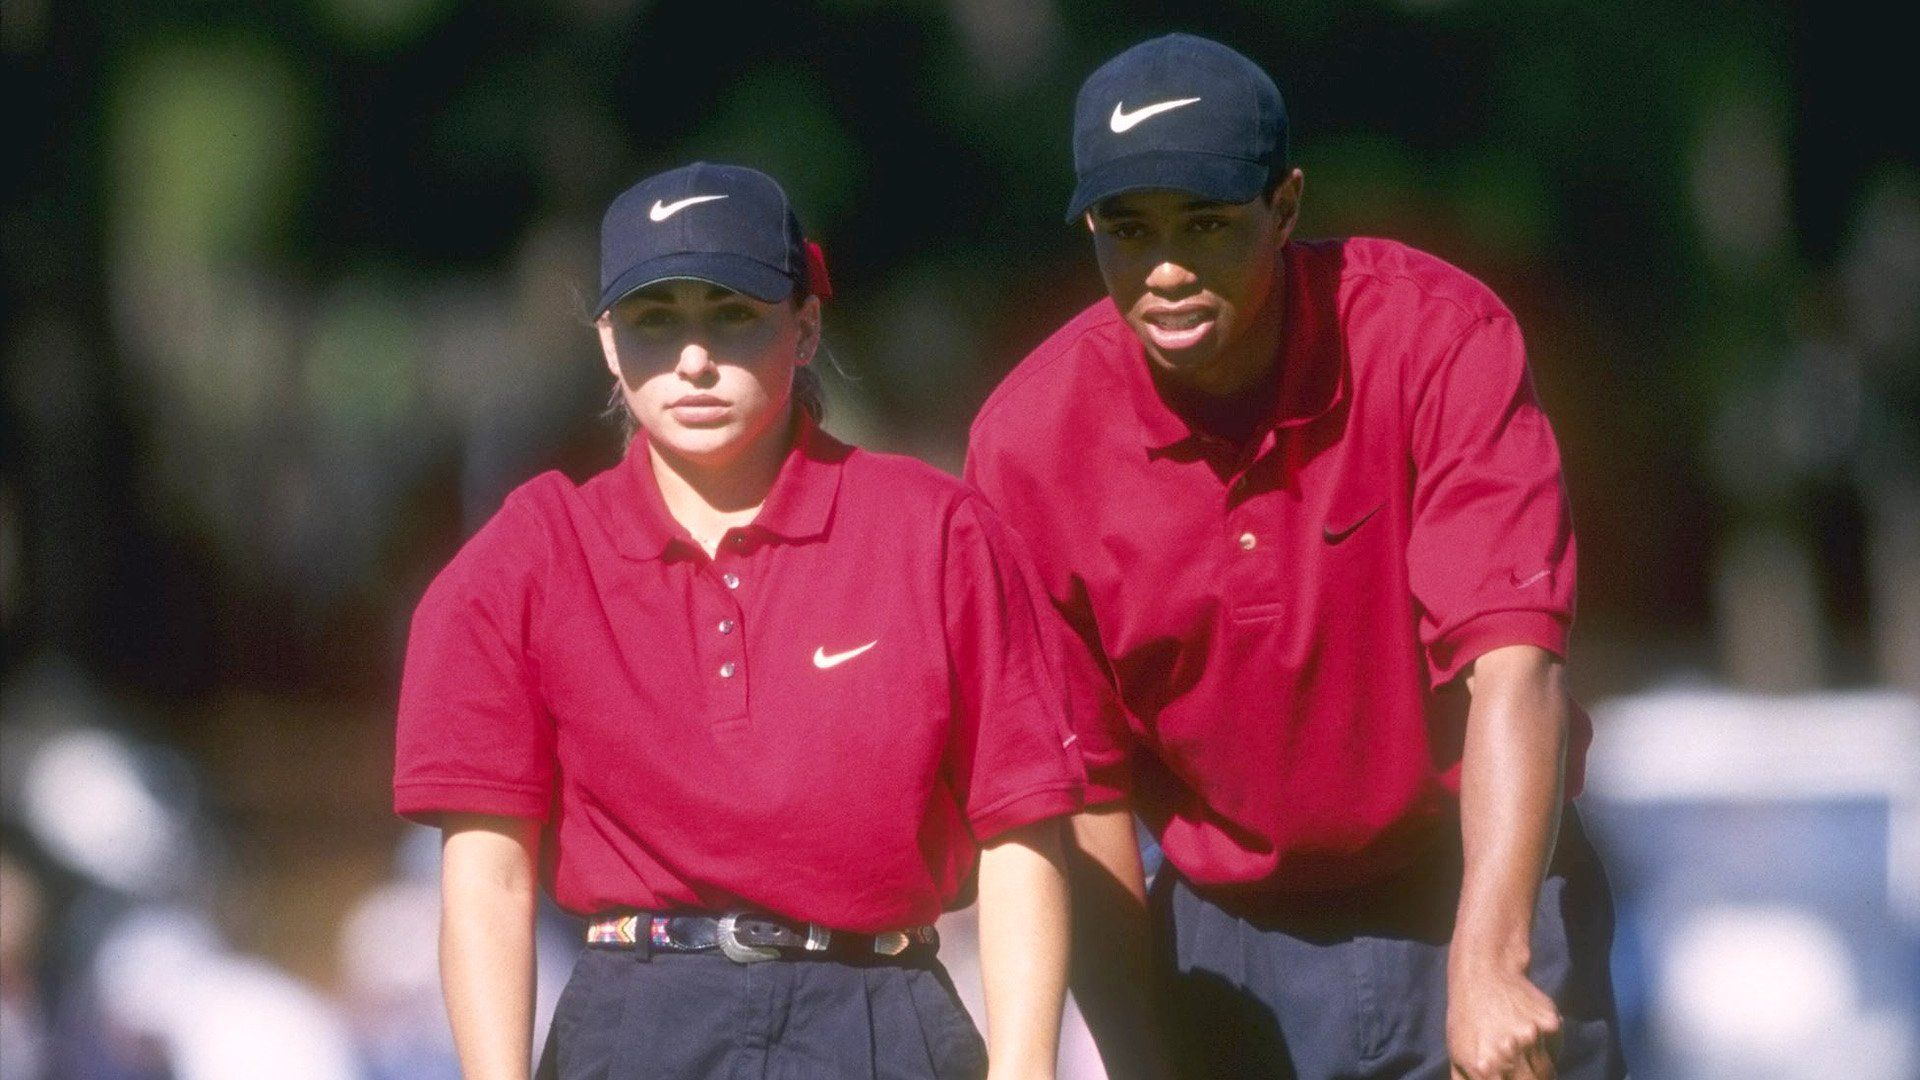 Bringing back a mixed LPGA/PGA team event? Our @RyanLavnerGC is all about the idea: https://t.co/uXjzvzUkFm https://t.co/4QDshPlpEv